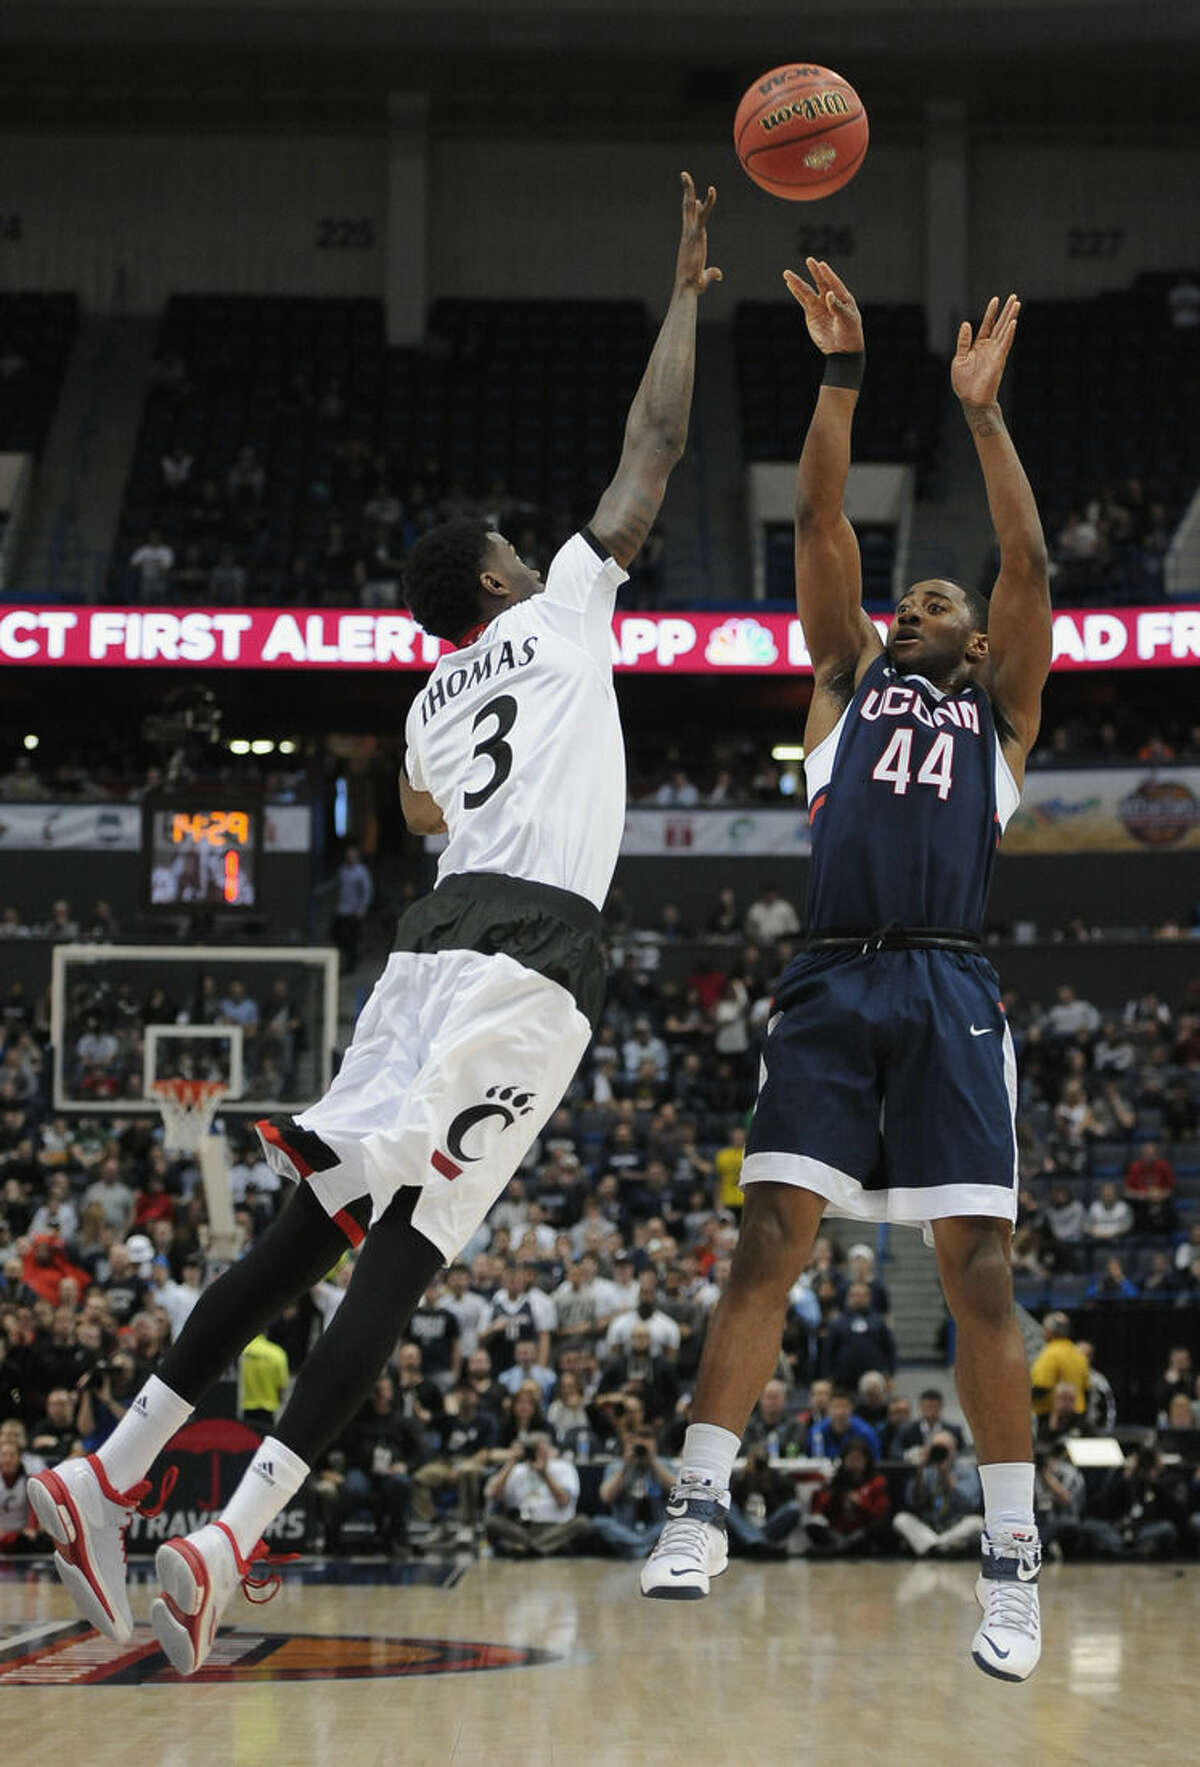 Connecticut's Rodney Purvis, right, shoots over Cincinnati's Shaq Thomas during the second half of an NCAA college basketball game in the quarterfinals of the American Athletic Conference tournament, Friday, March 13, 2015, in Hartford, Conn. (AP Photo/Jessica Hill)